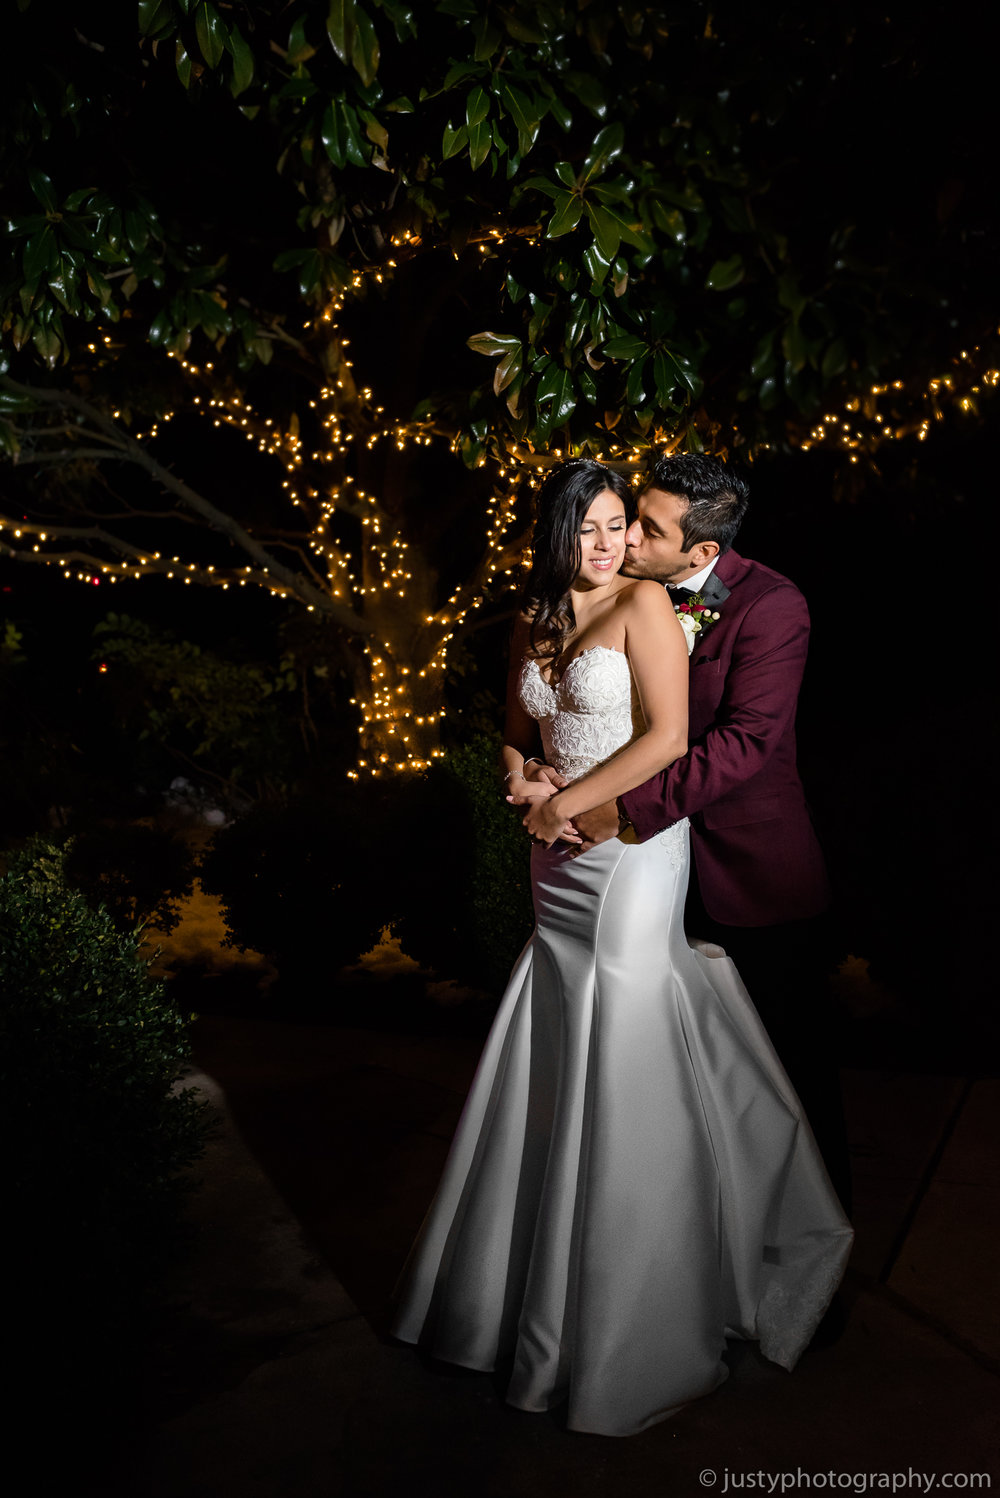 Ceresville Mansion Wedding Photos- Bride and Groom Night Portrait.jpg